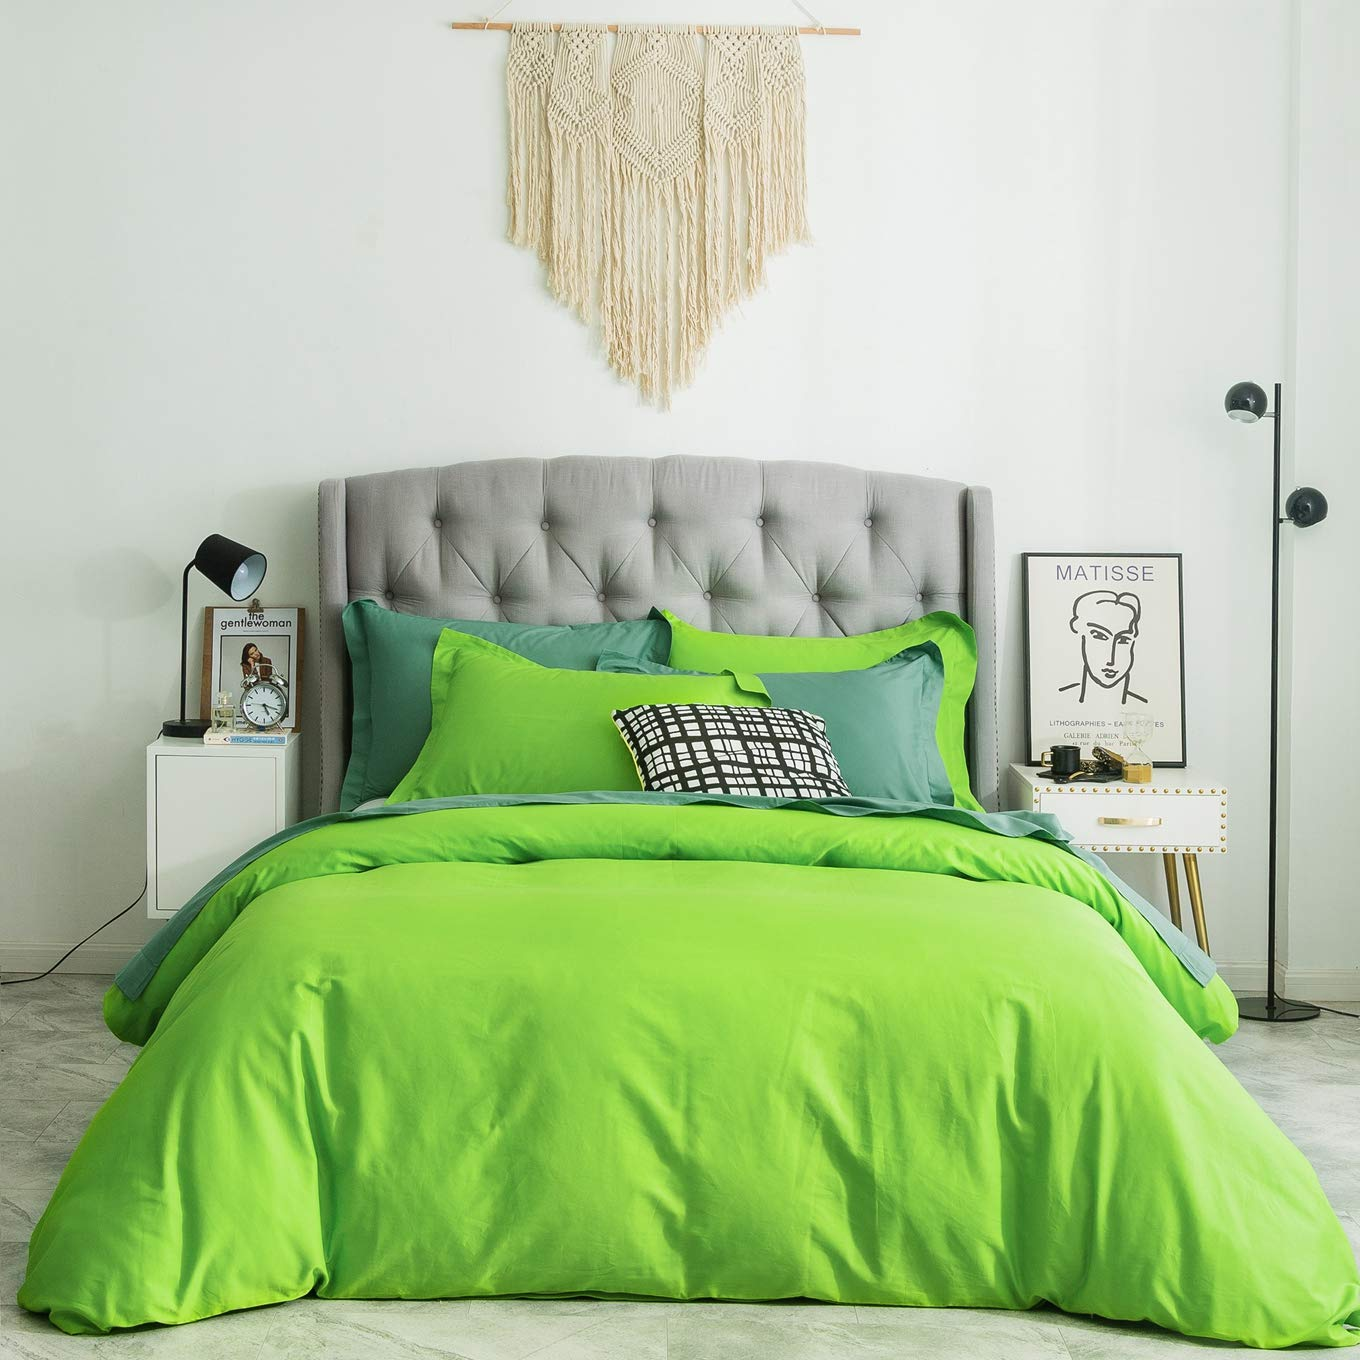 SUSYBAO 3 Pieces Duvet Cover Set 100% Natural Cotton Queen Size 1 Duvet Cover 2 Pillow Shams Light Green Luxury Quality Ultra Soft Breathable Lightweight